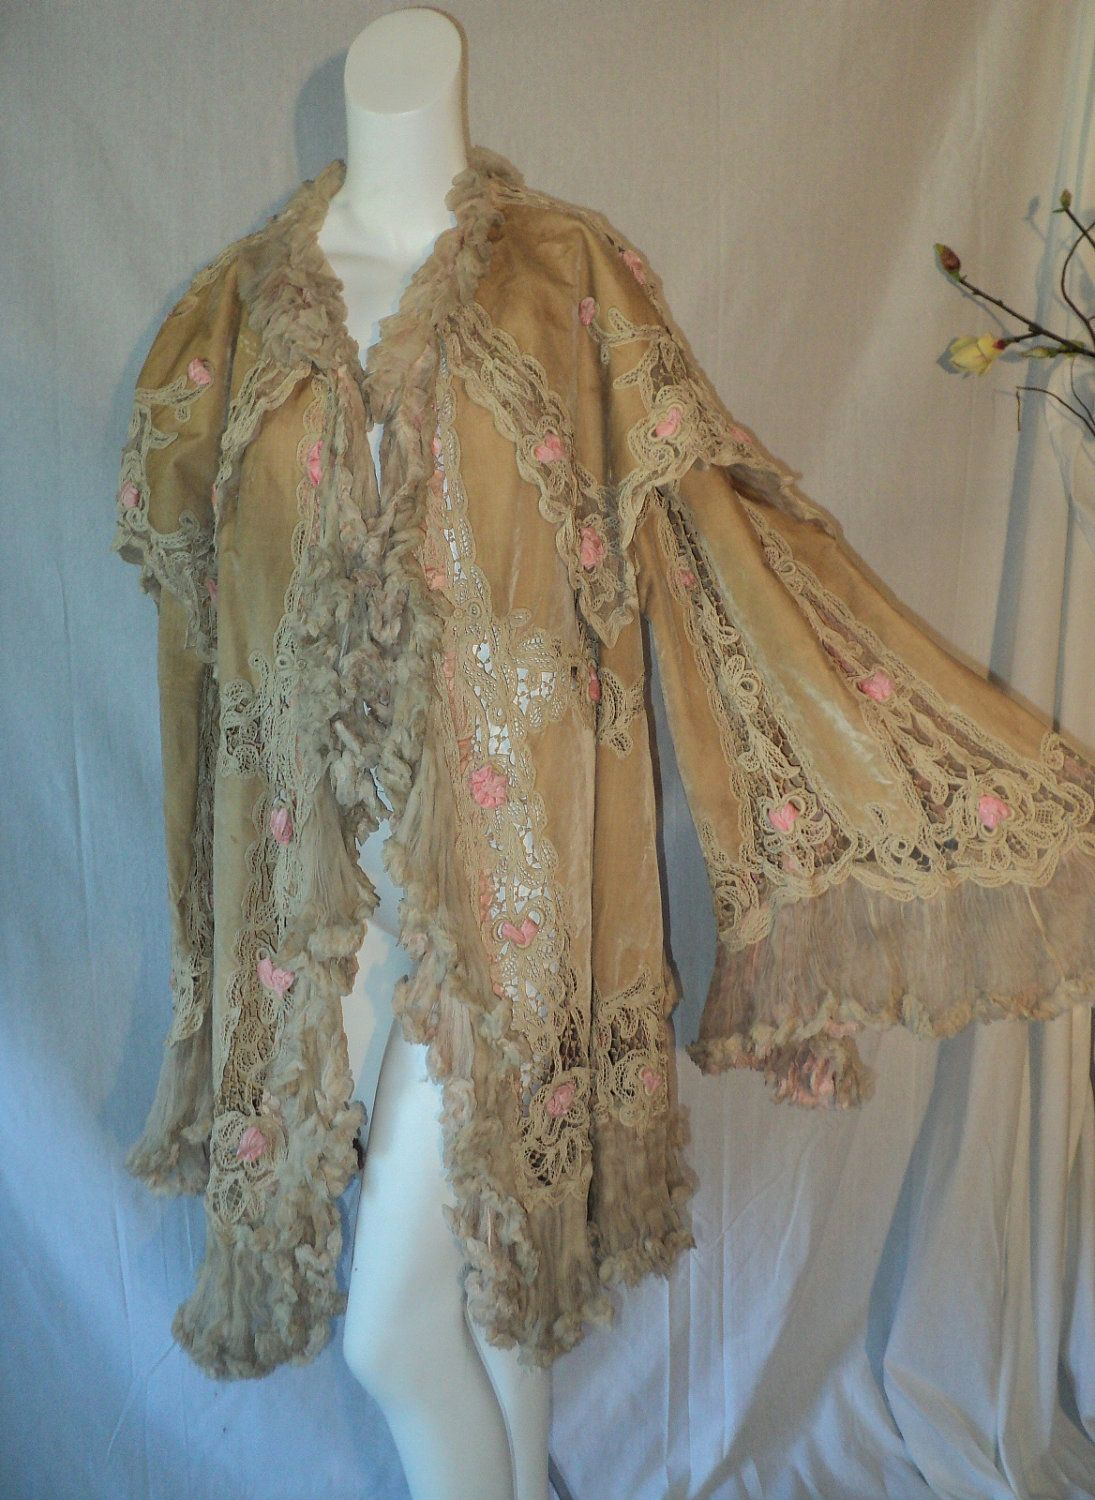 Amazing Antique Tape Lace Edwardian Coat with Champagne Velvet and Pink Rosettes 1912 Titanic Era.